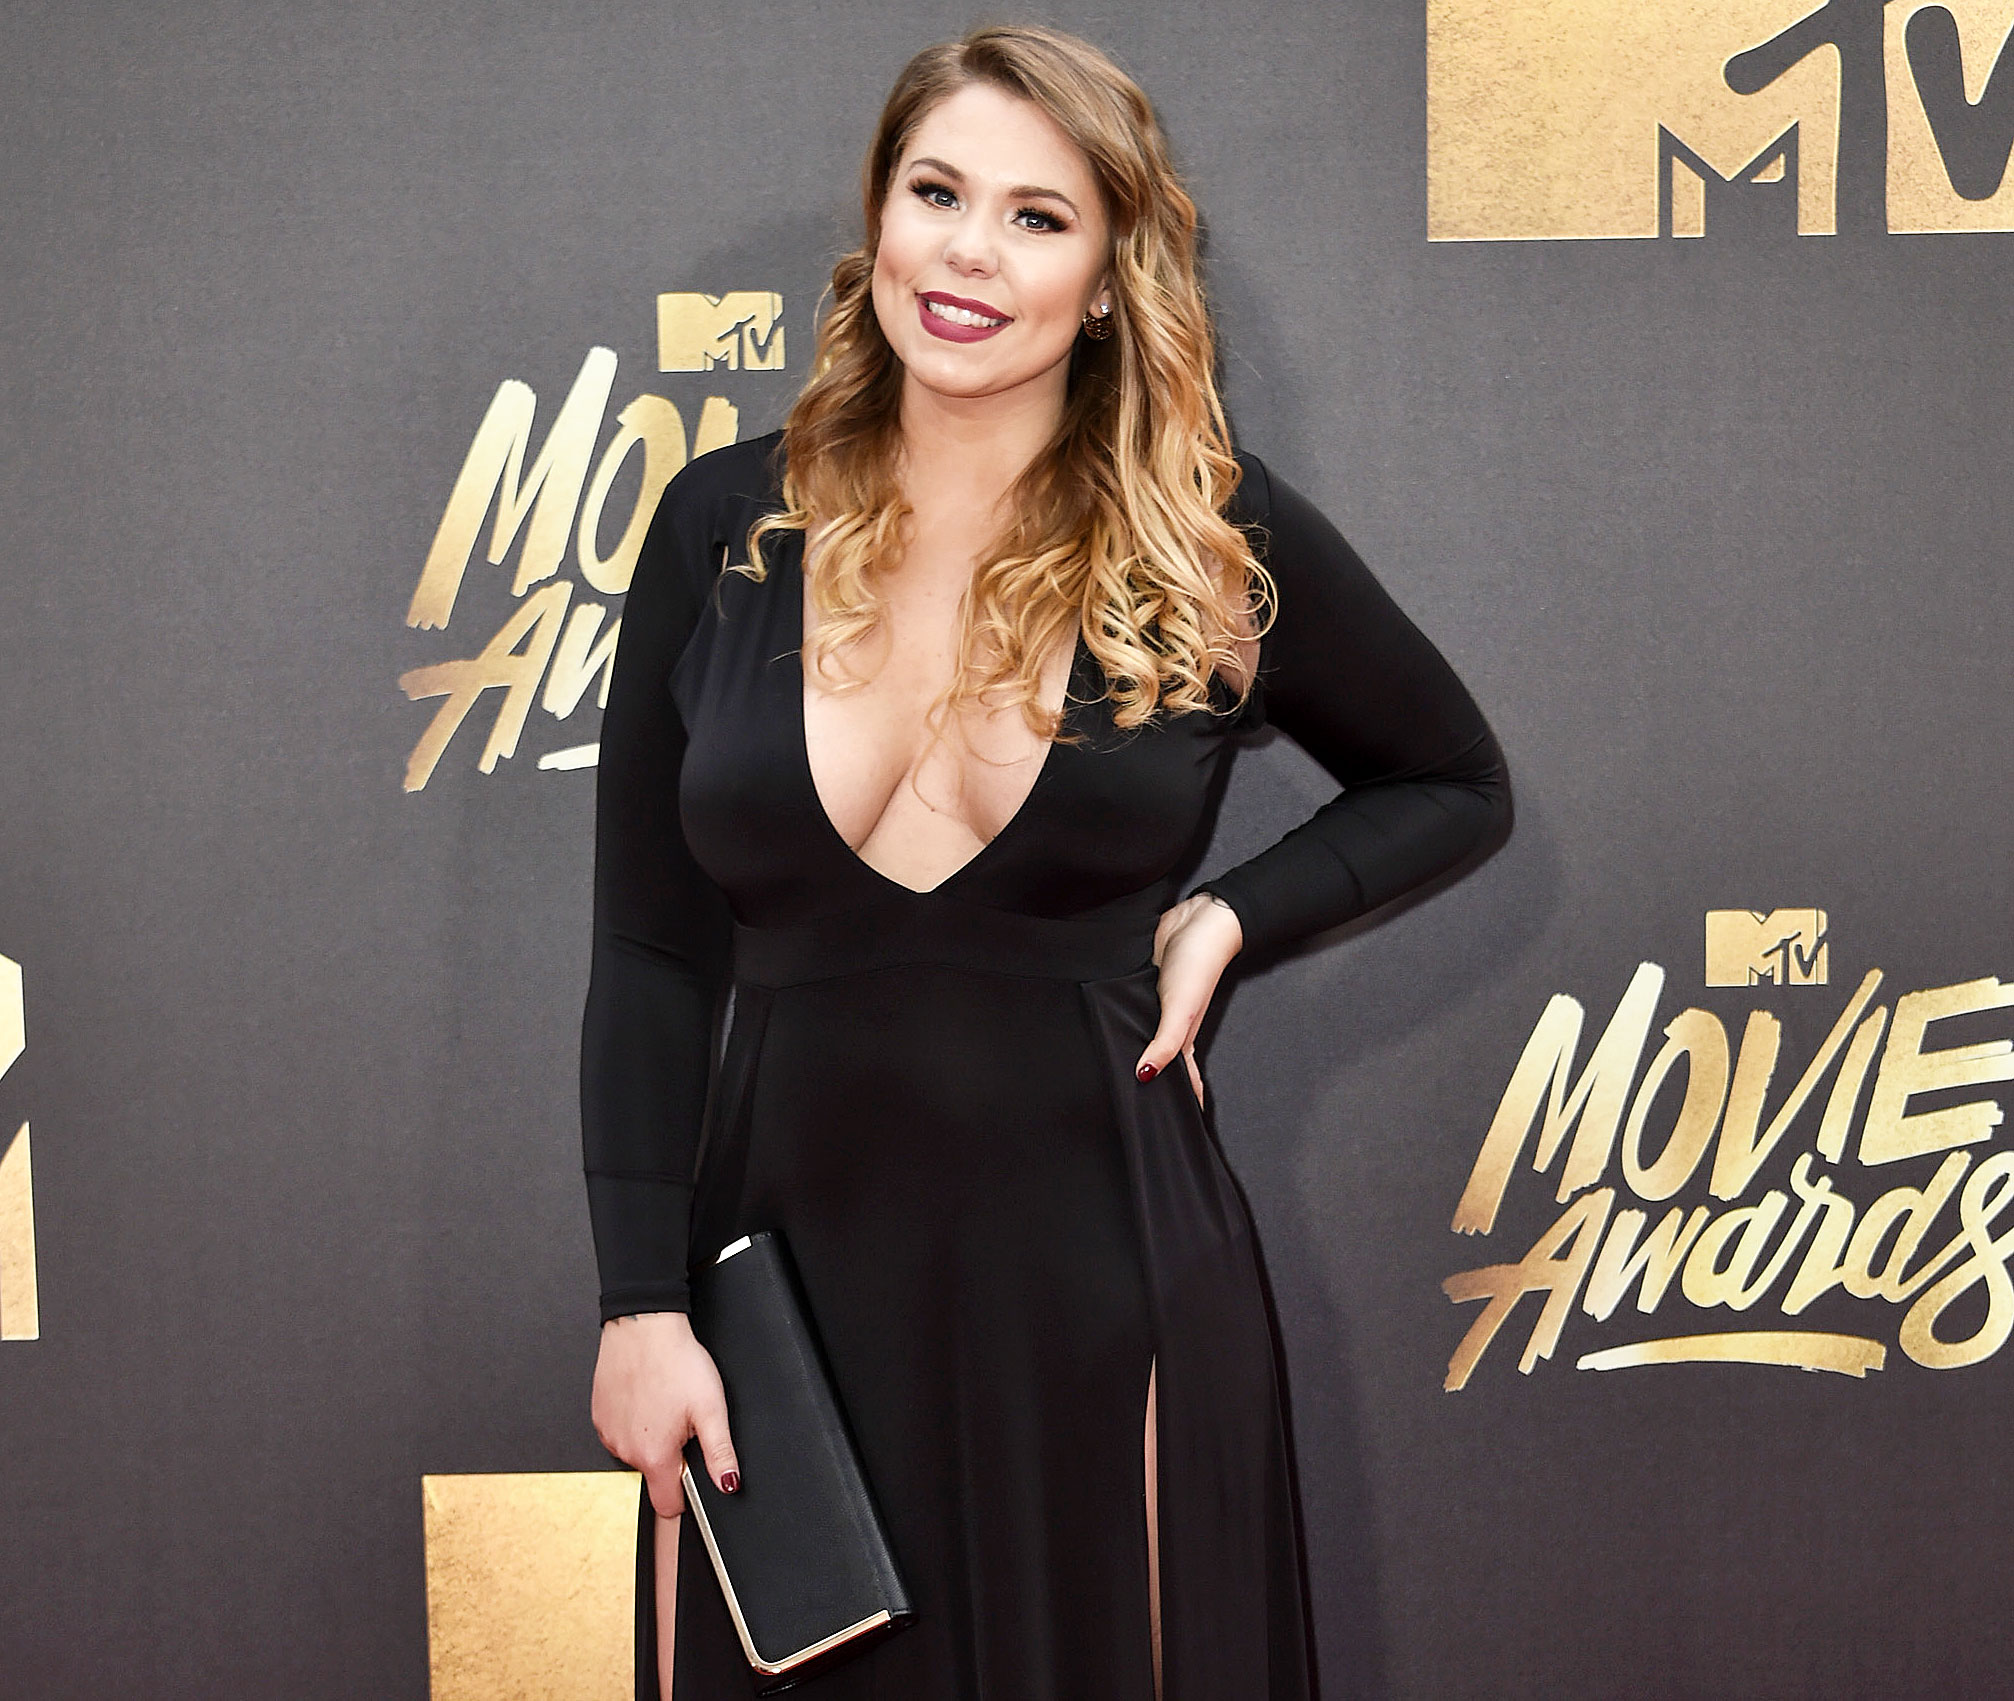 Pregnant Kailyn Lowry Is Getting Progesterone Shots Every Week